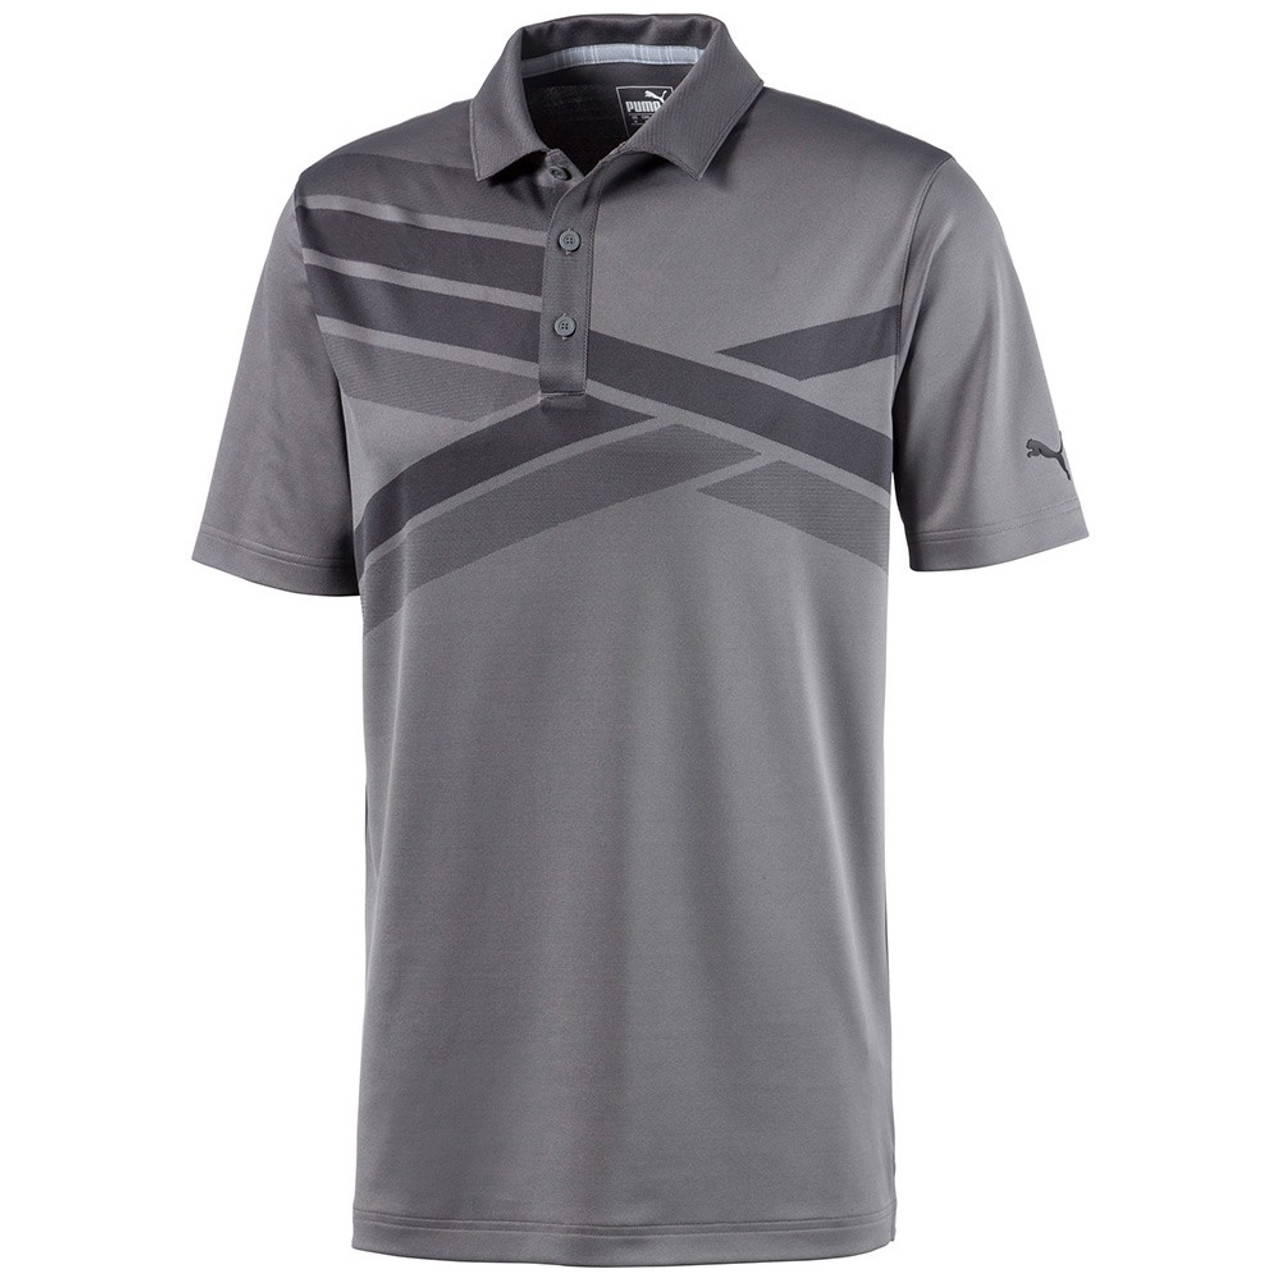 Puma ALTERKNIT Texture Polo - Quiet Shade